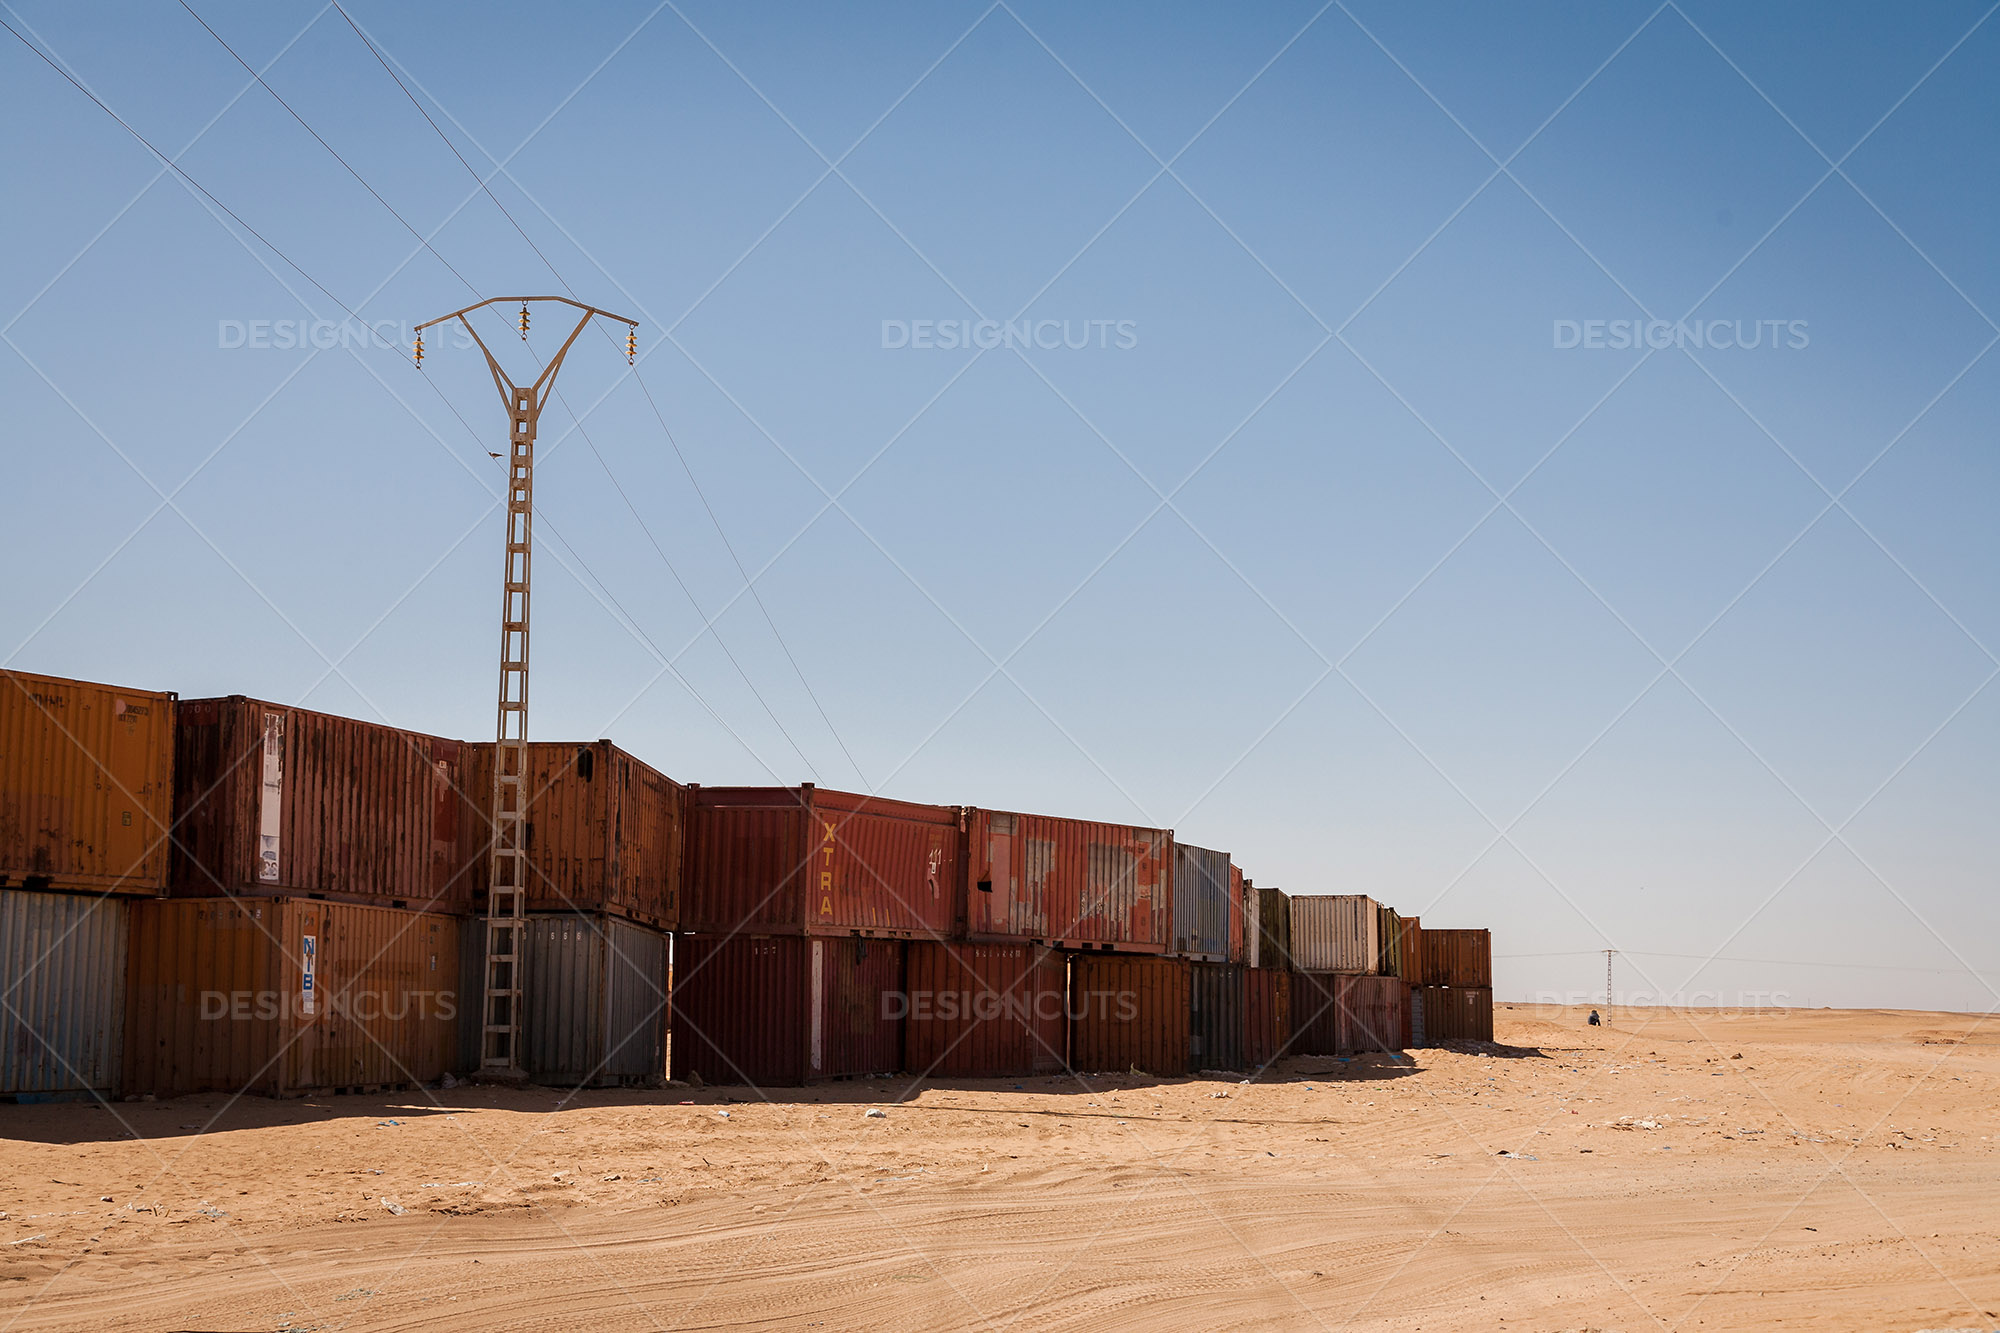 A Wall Of Shipping Containers In The Sahara Desert Design Cuts